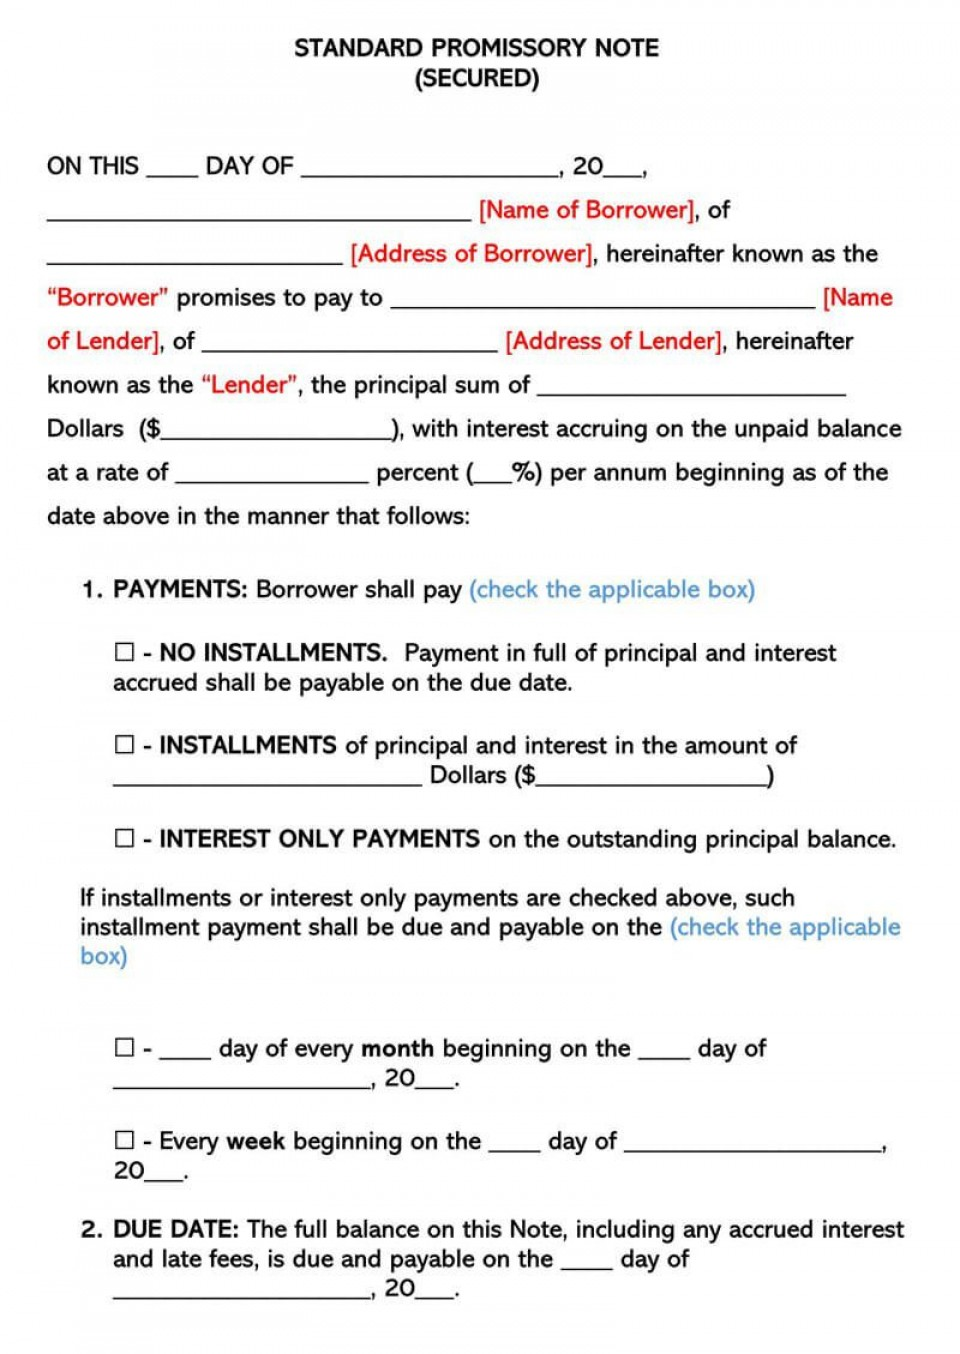 008 Sensational Secured Promissory Note Template Photo  Free Word Georgia California960